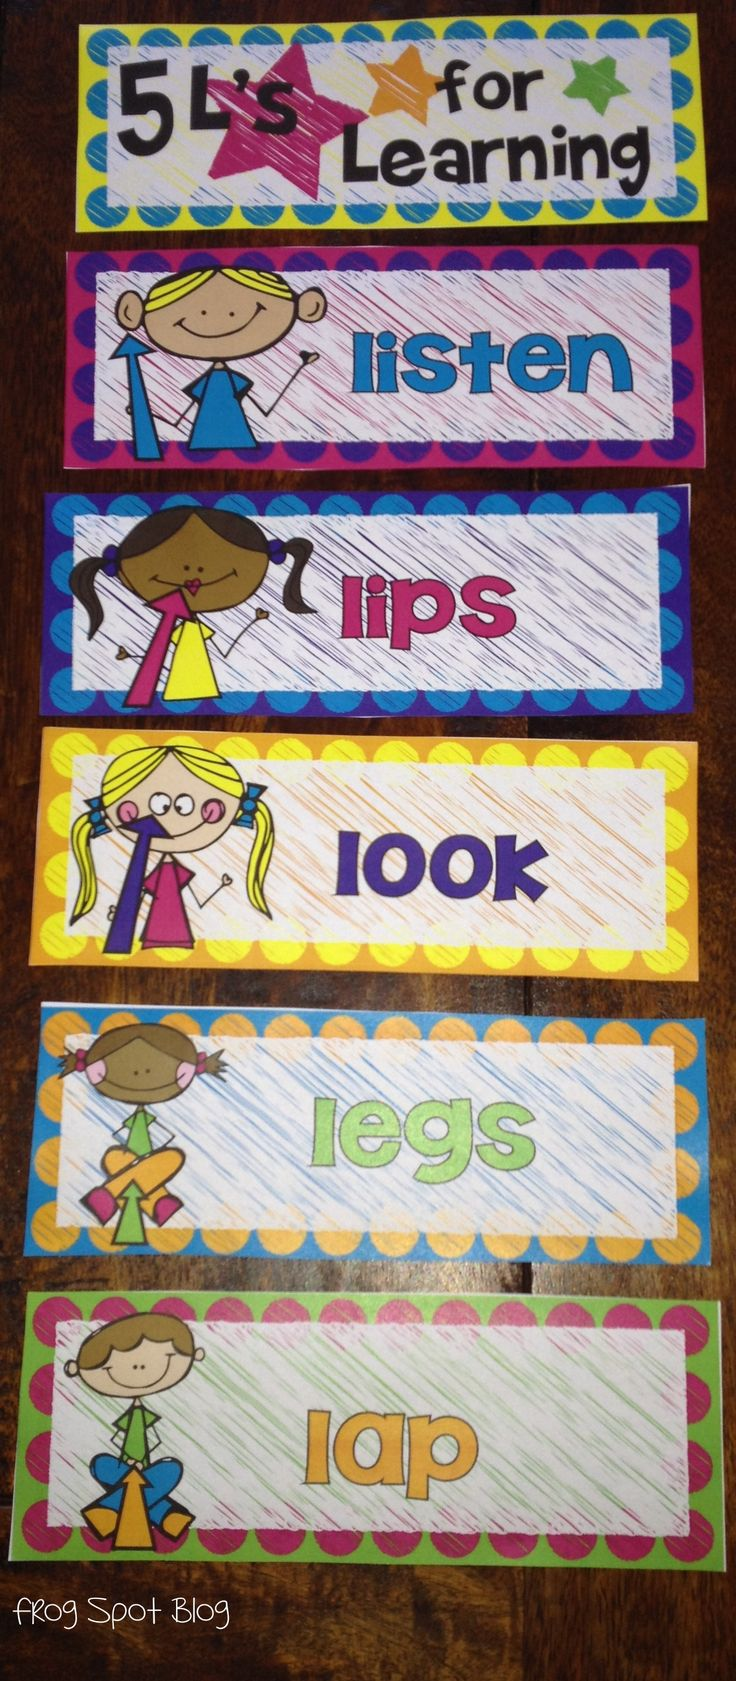 5 Ls of Learning - Look, Listen, Lips, Lap and Legs - Posters and Printables $